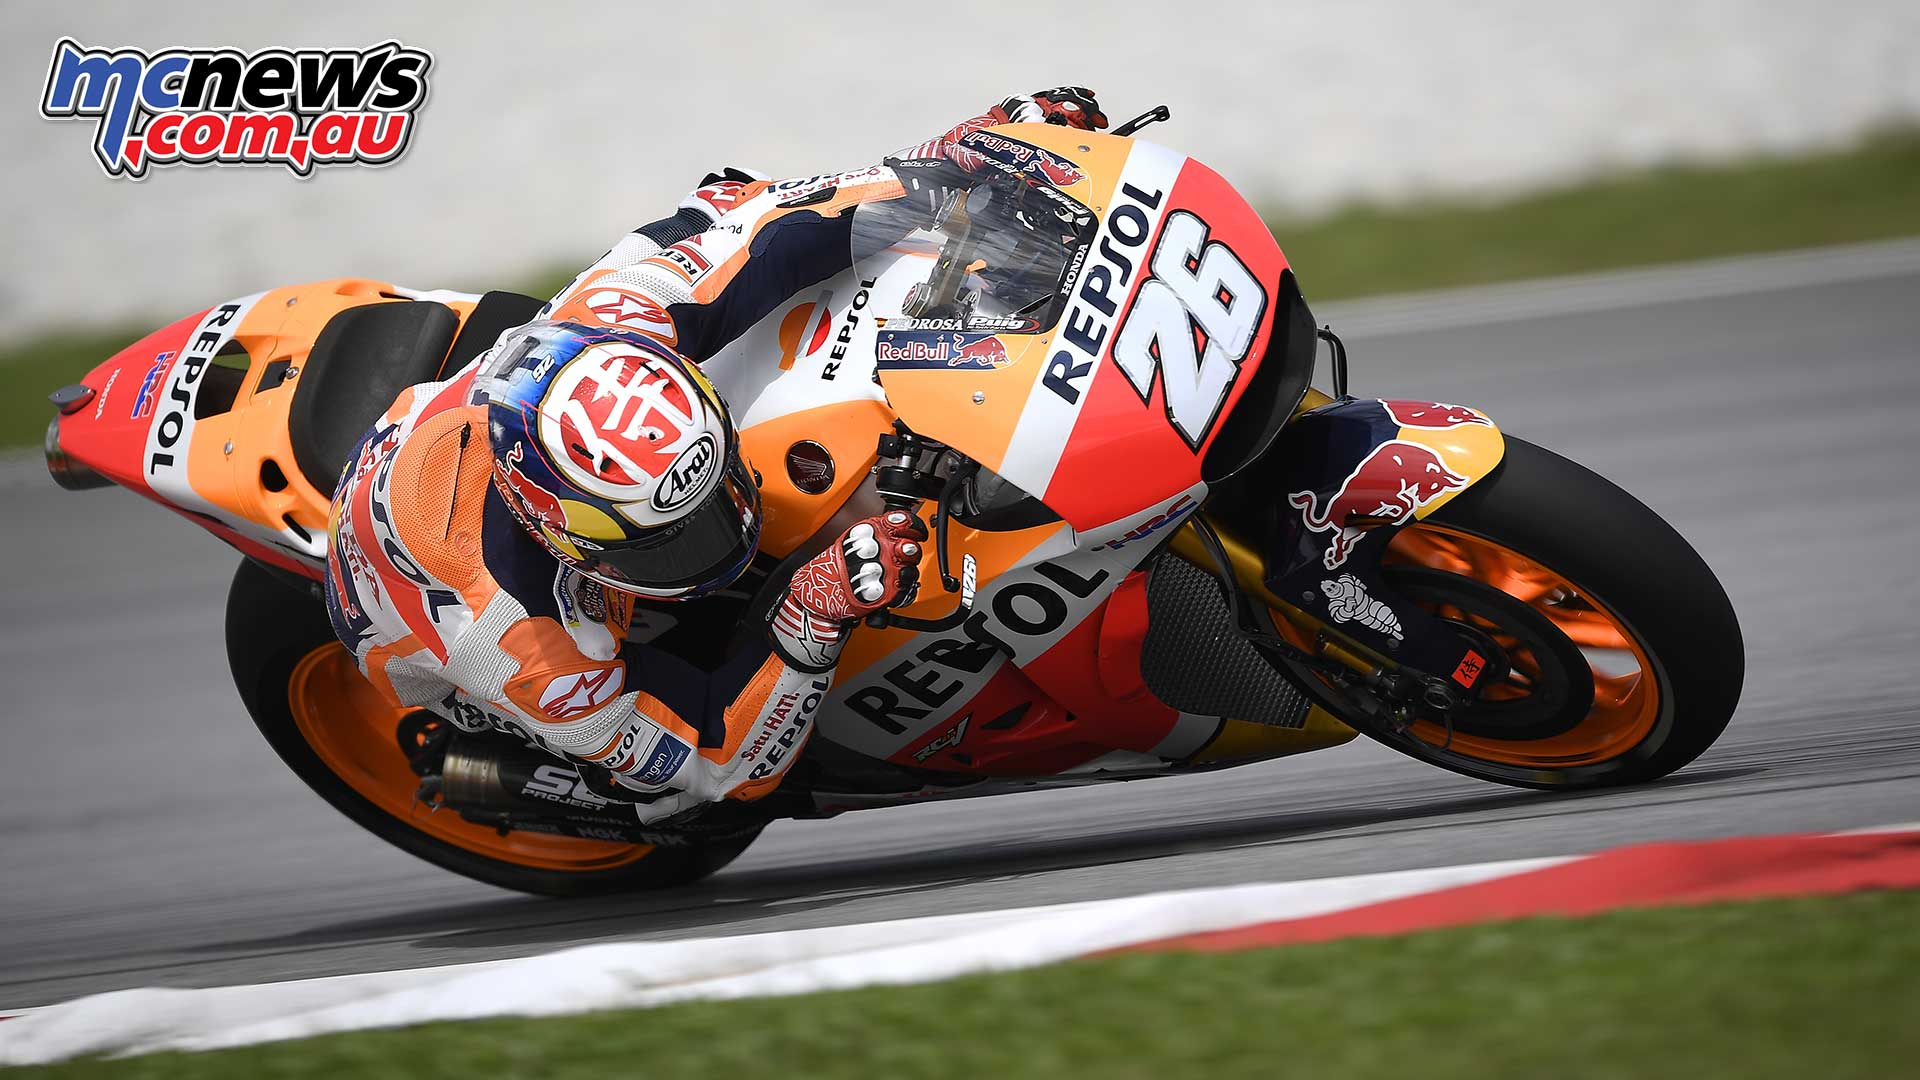 Pedrosa, Dovizioso, Lorenzo set pace on 1st pre-season test day